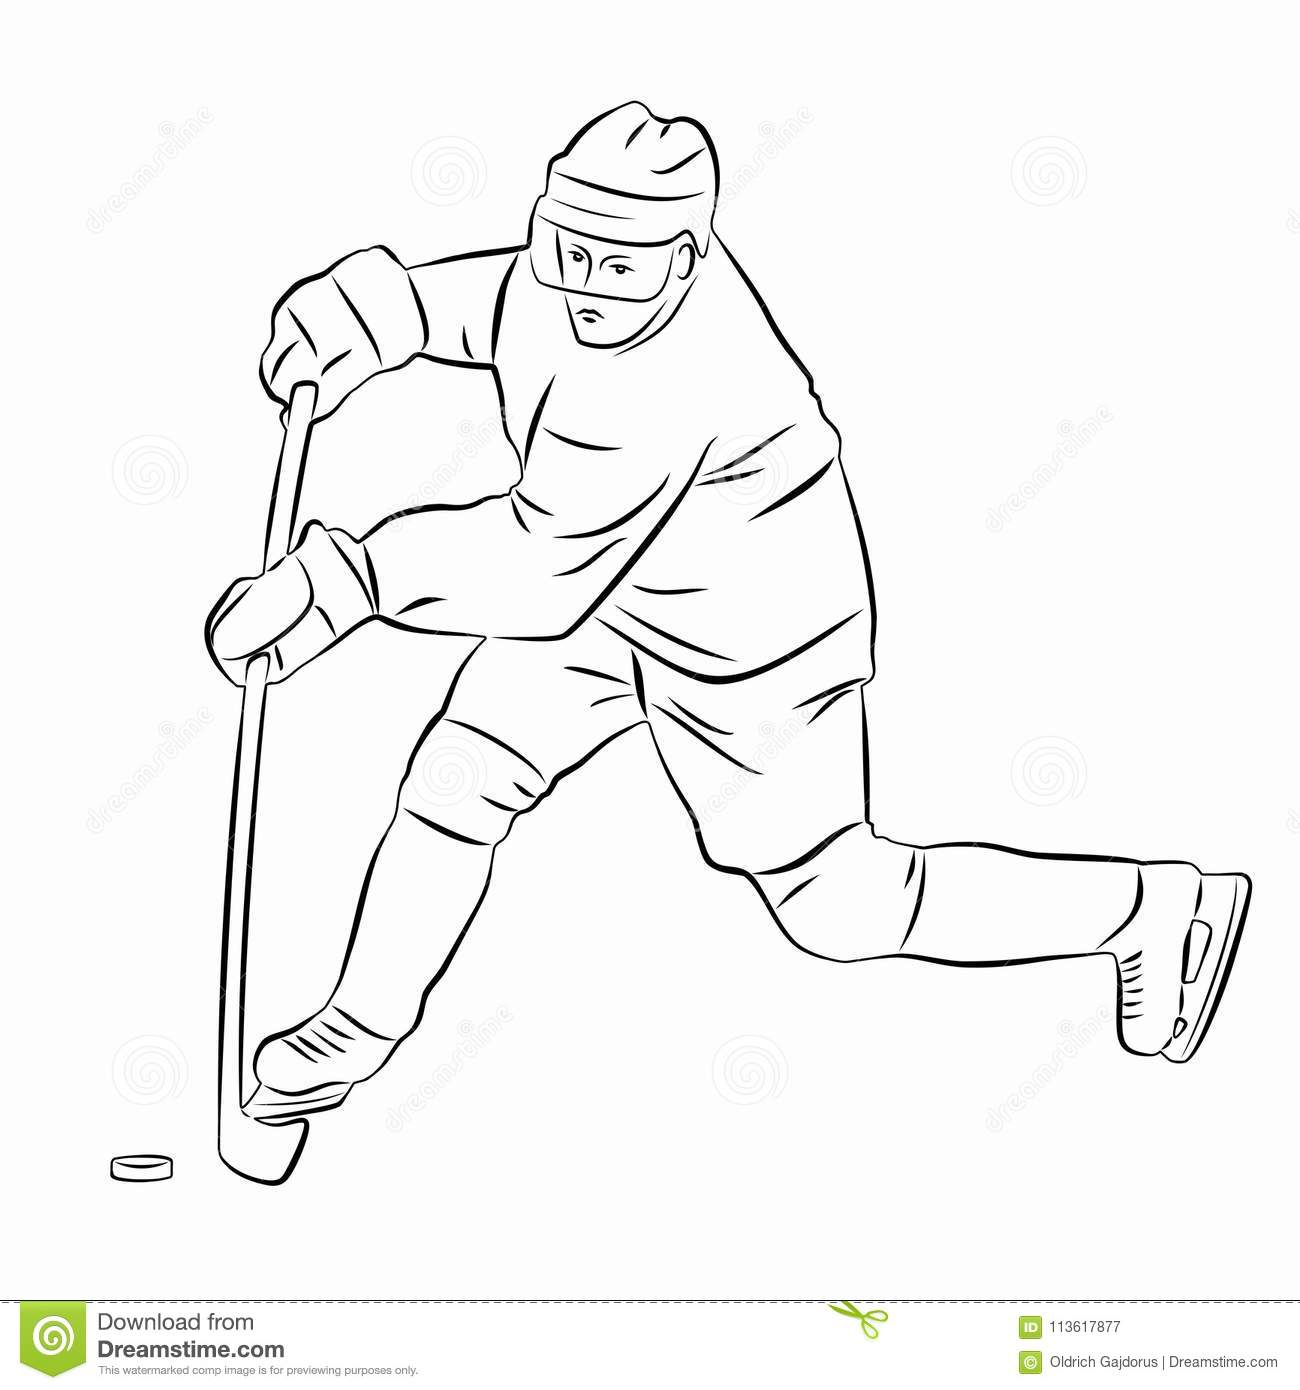 how to draw a cartoon hockey player hockey goalie drawing at getdrawings free download player draw to a cartoon hockey how